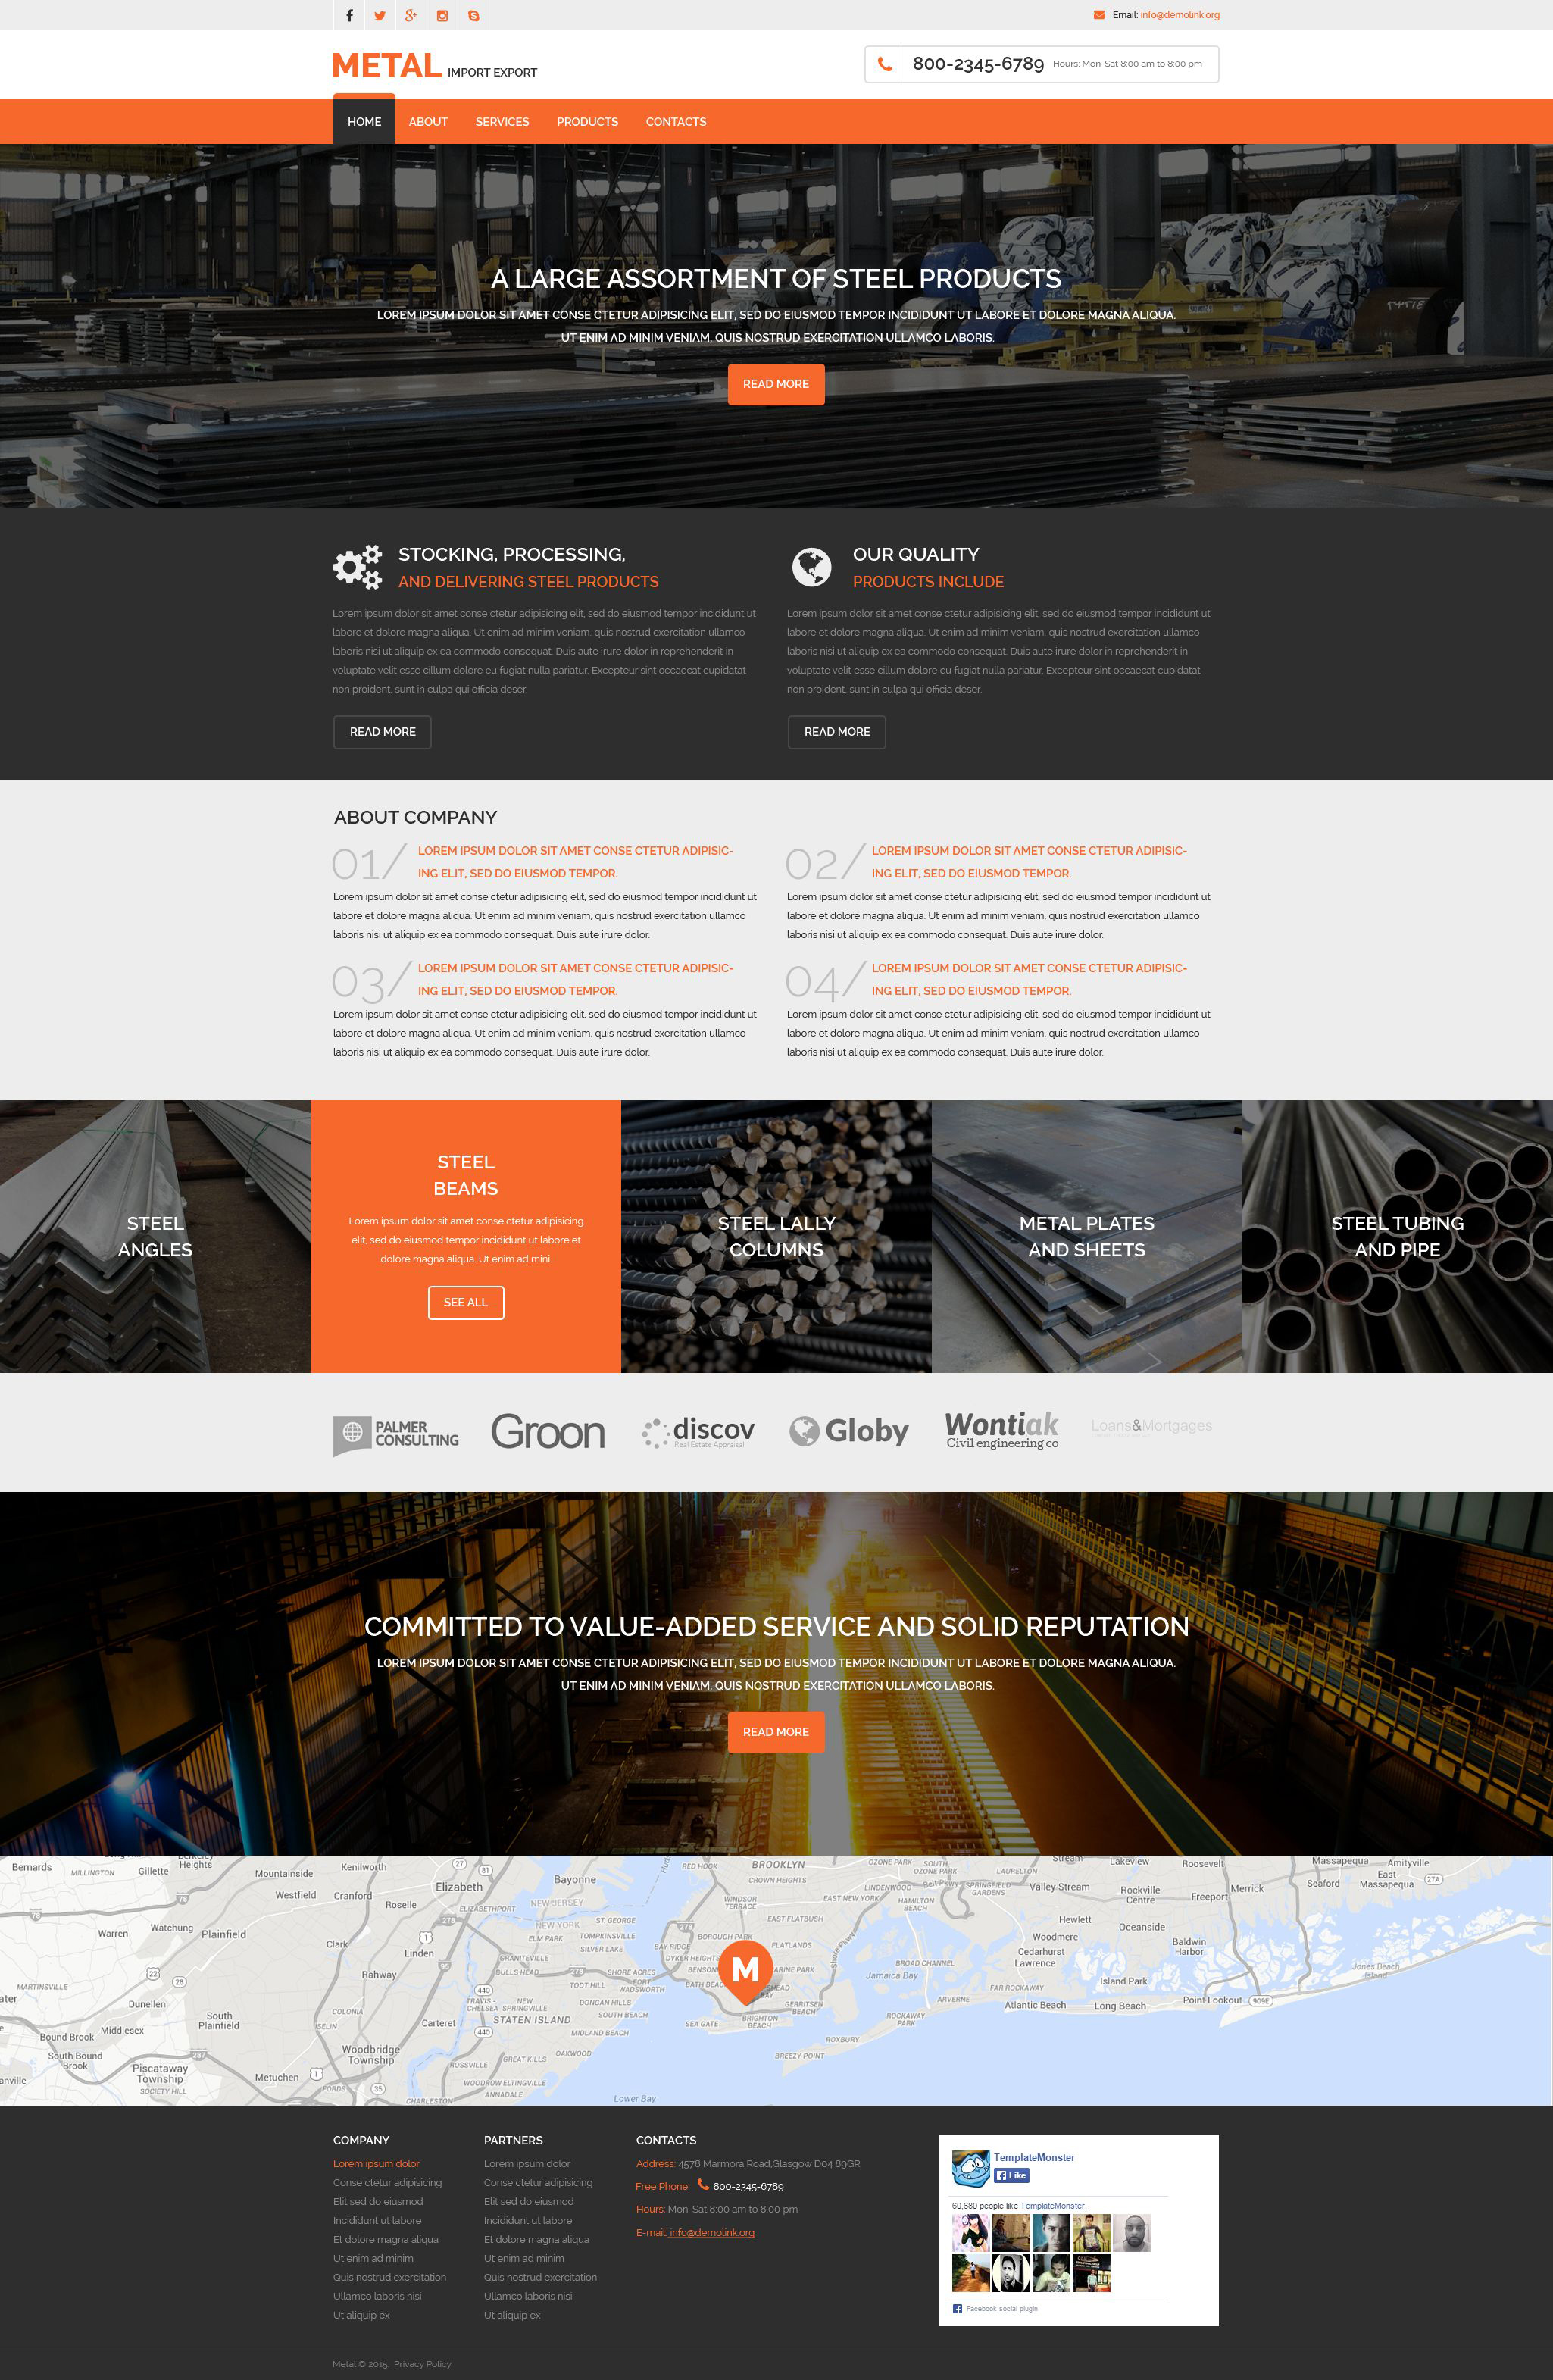 The Metal Import Bootstrap Design 53971, one of the best website templates of its kind (industrial, most popular), also known as metal import website template, export website template, industry website template, steel website template, workshop website template, business website template, modern facility website template, scarf website template, autogenous website template, oxy-acetylene website template, arc website template, staff website template, about website template, us website template, products website template, contacts website template, industry website template, pick website template, process website template, quality website template, construction website template, excellent website template, aftercare website template, service website template, delivery website template, time website template, work website template, job  success and related with metal import, export, industry, steel, workshop, business, modern facility, scarf, autogenous, oxy-acetylene, arc, staff, about, us, products, contacts, industry, pick, process, quality, construction, excellent, aftercare, service, delivery, time, work, job  success, etc.